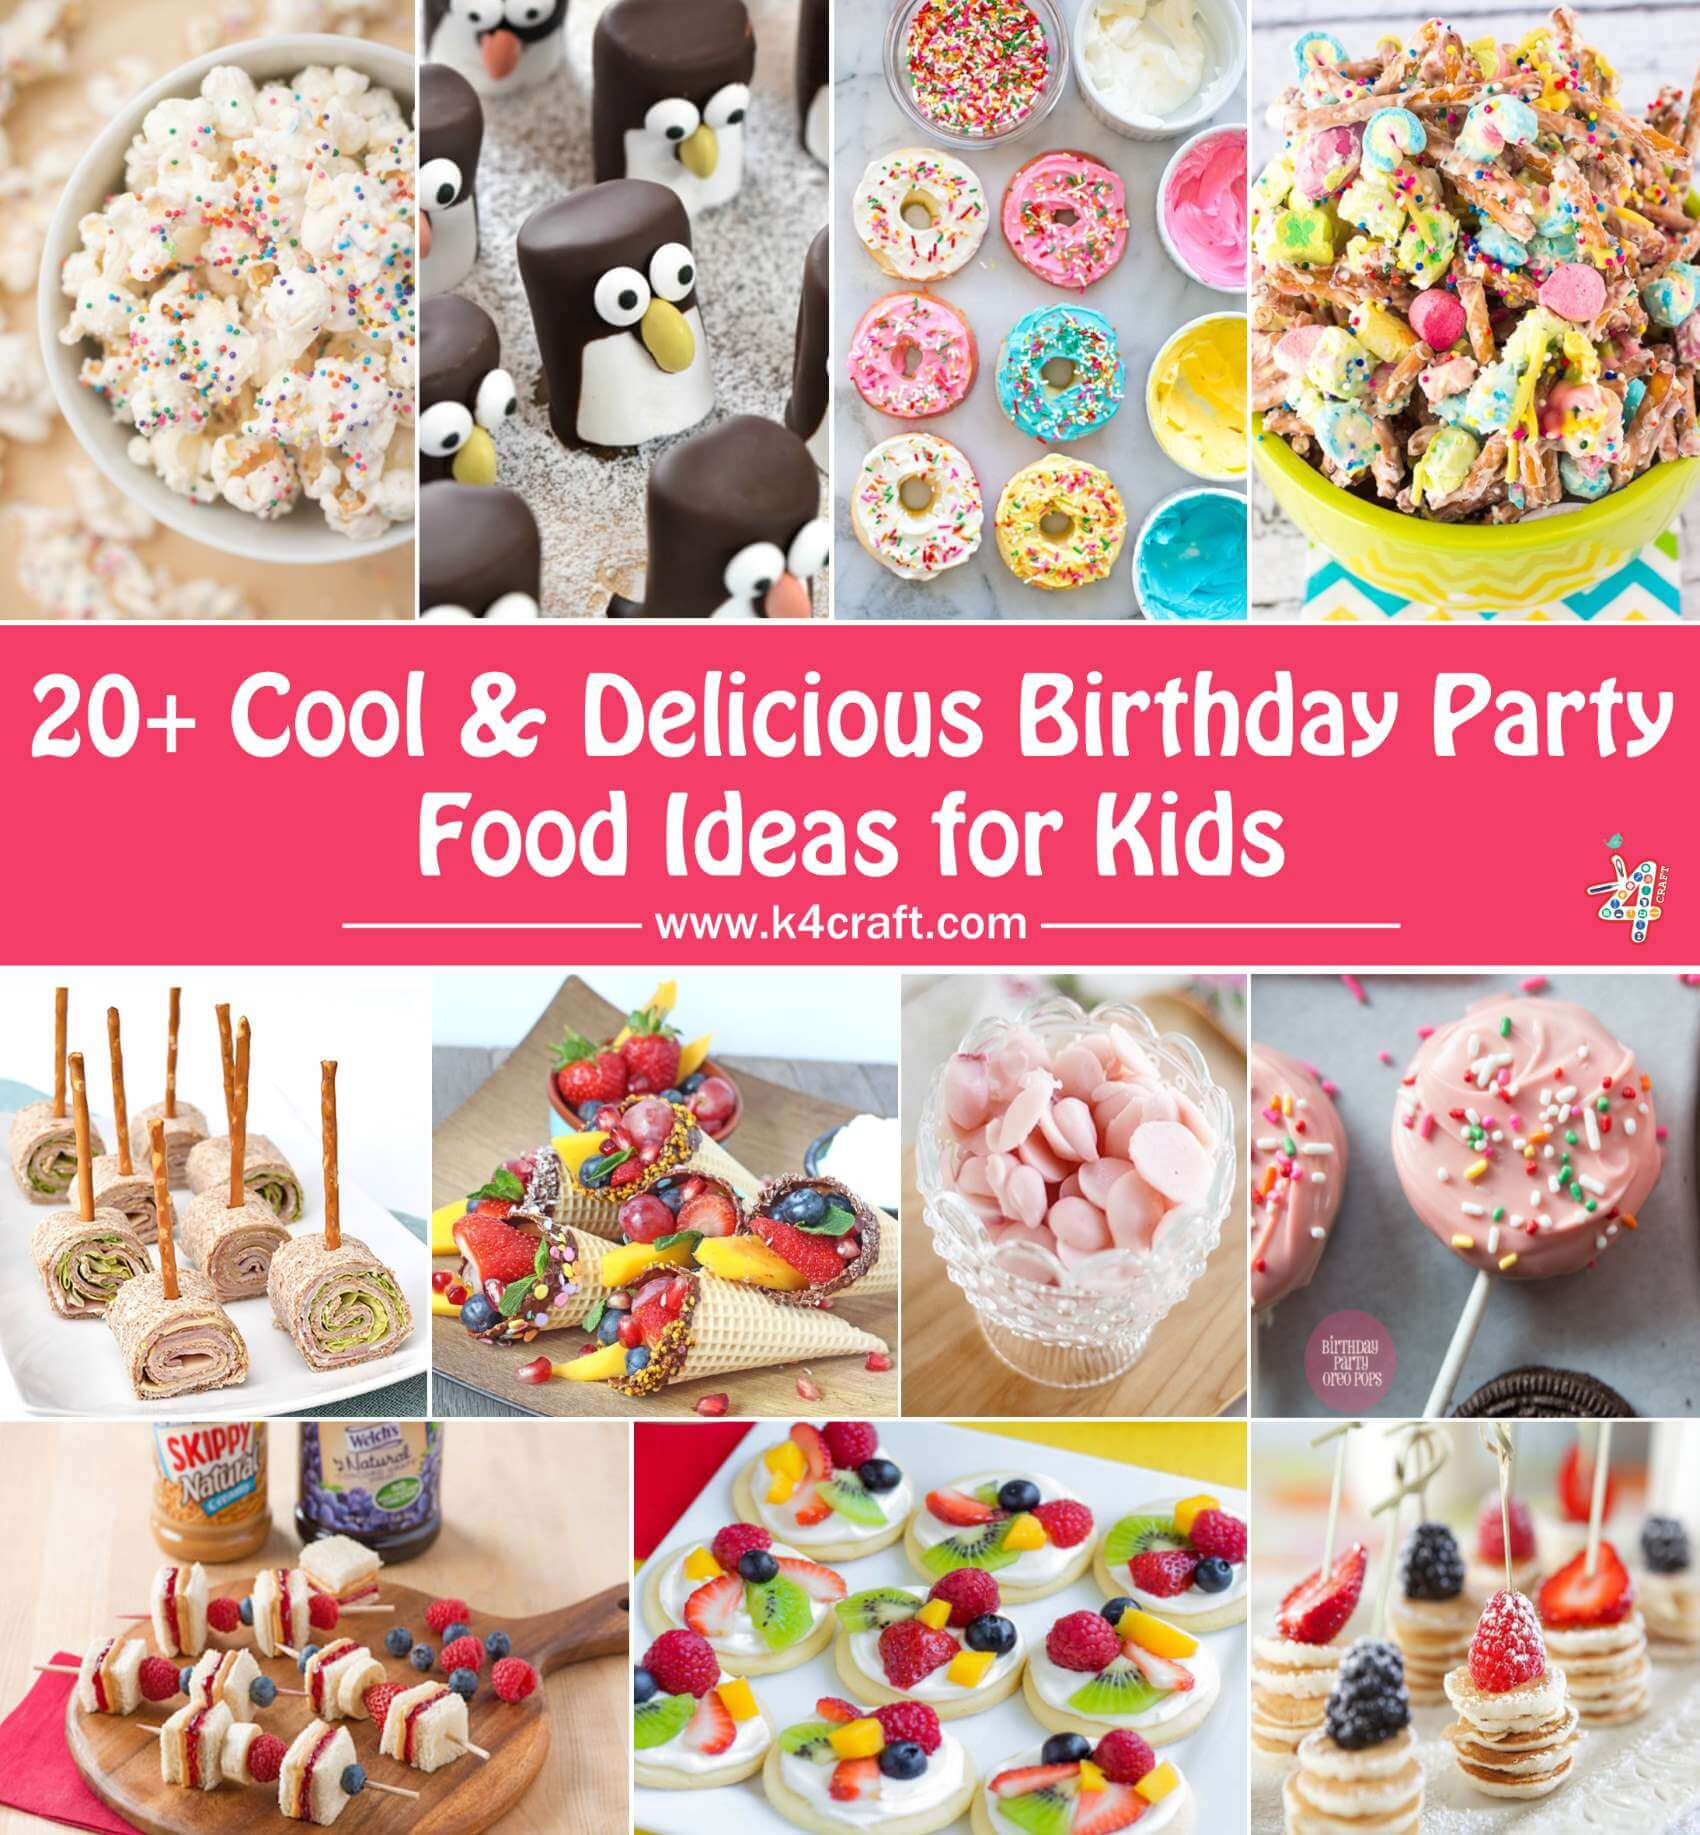 Cool Kids Party Ideas  Cool & Delicious Birthday Party Food Ideas for Kids • K4 Craft